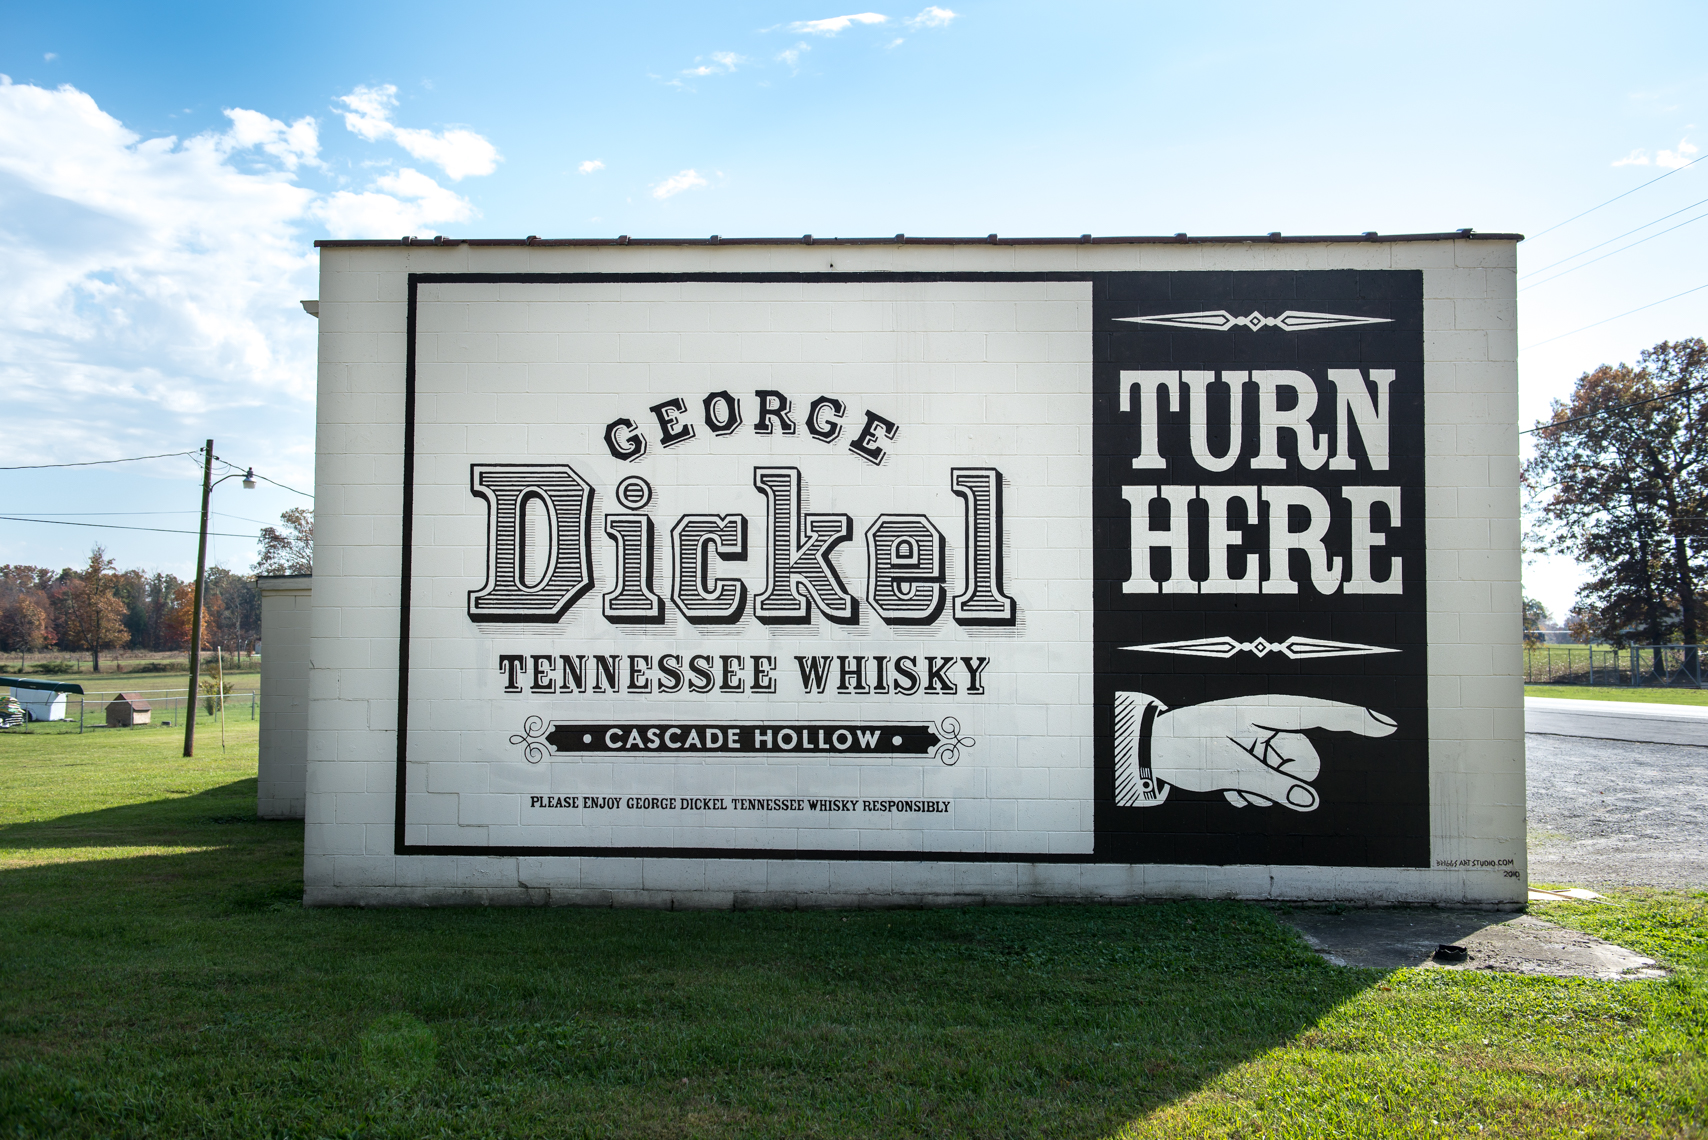 George Dickel Distillery - Tennessee Whiskey